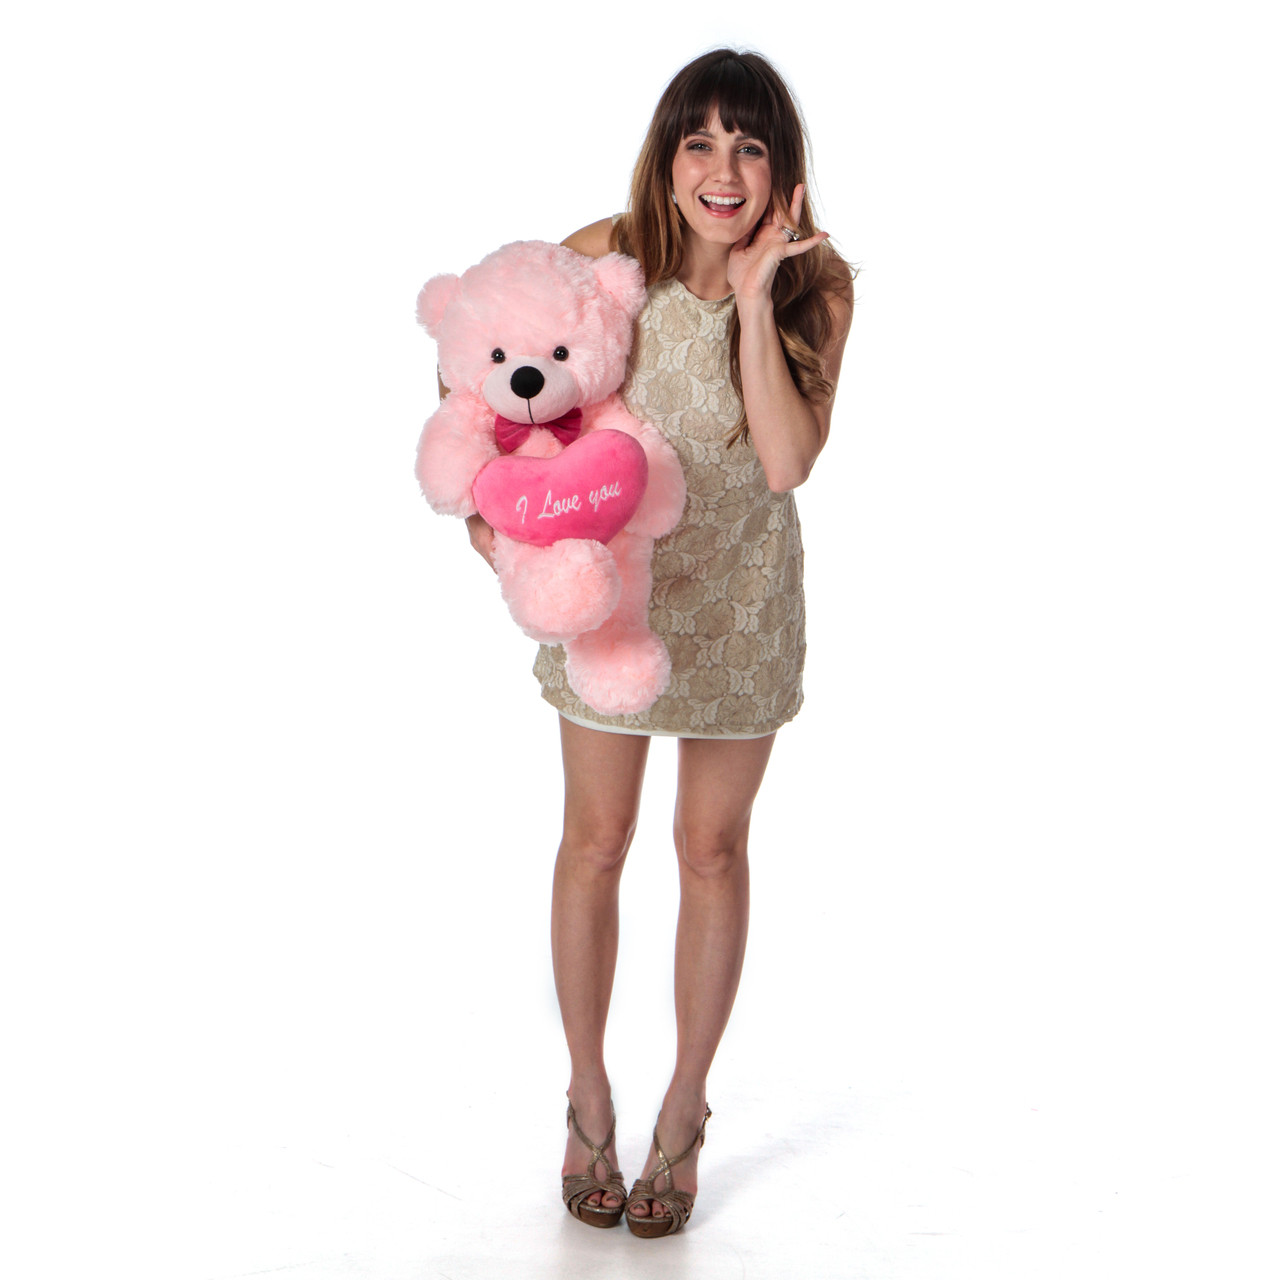 Giant Teddy Brand Premium Quality Pink Teddy Bear with Pink I Love You Heart